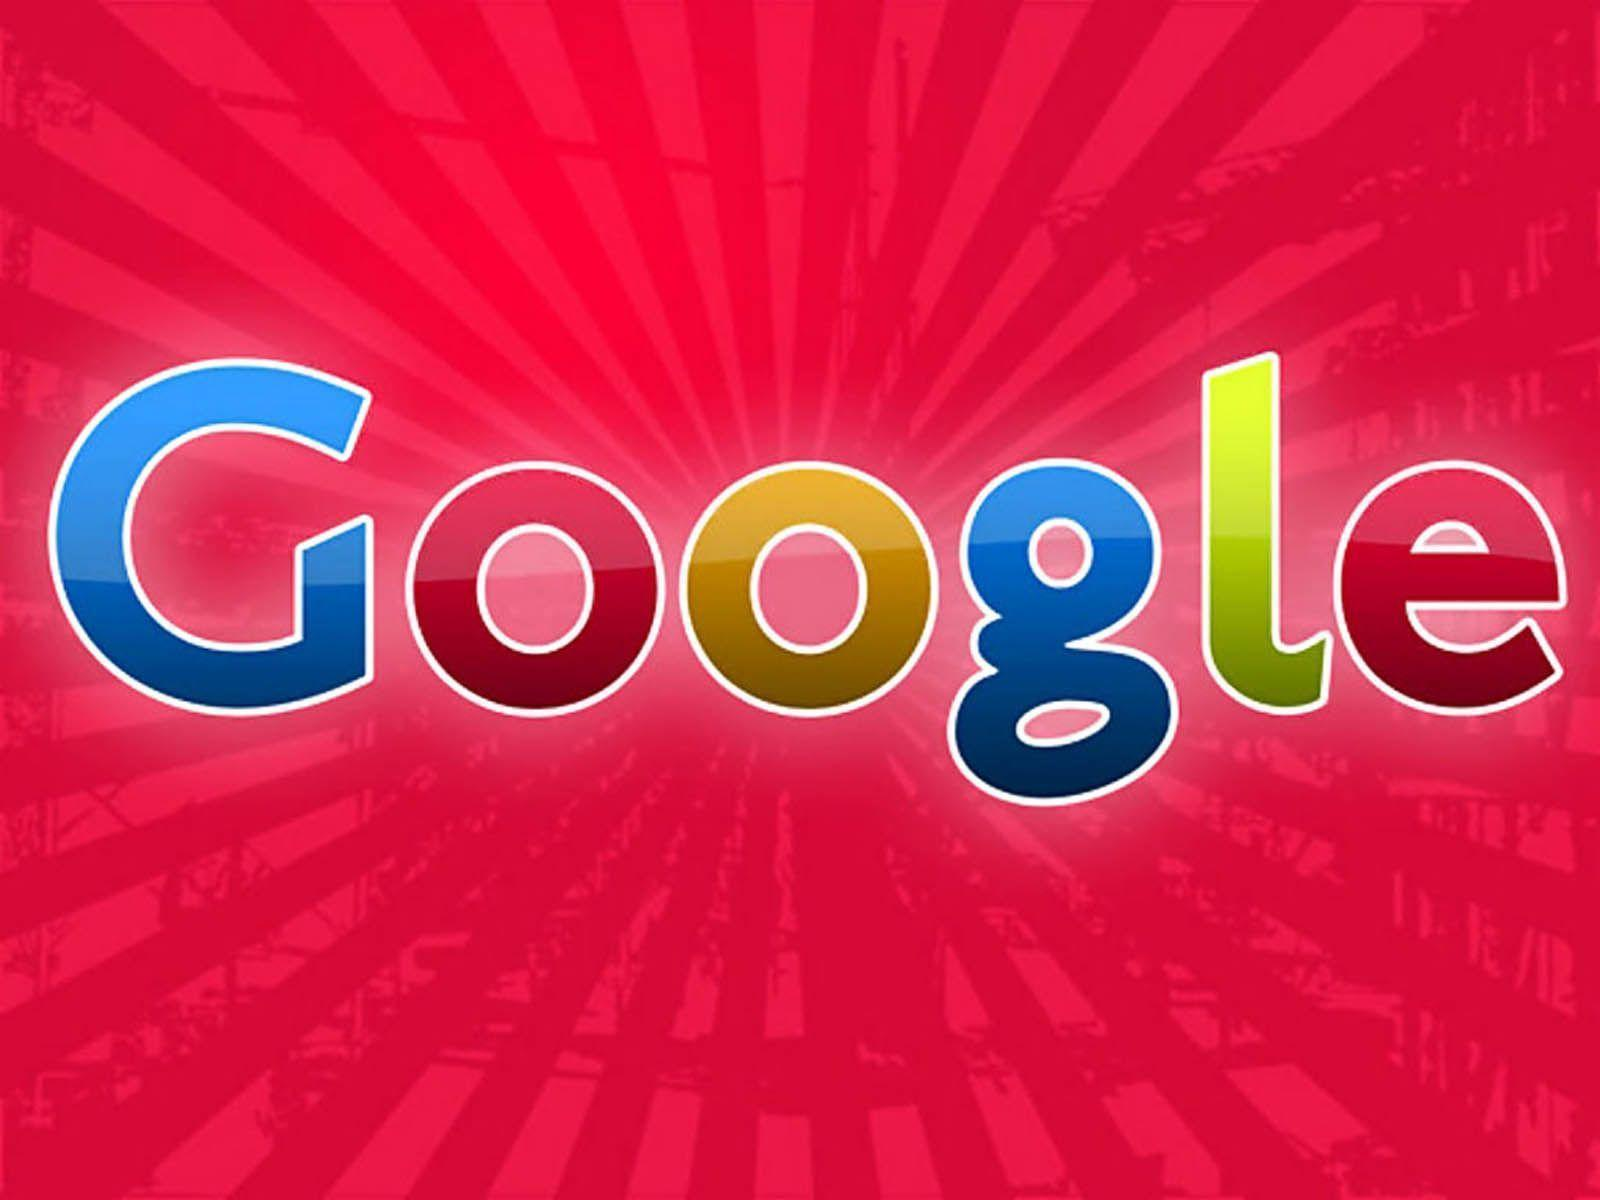 free google backgrounds image wallpaper cave